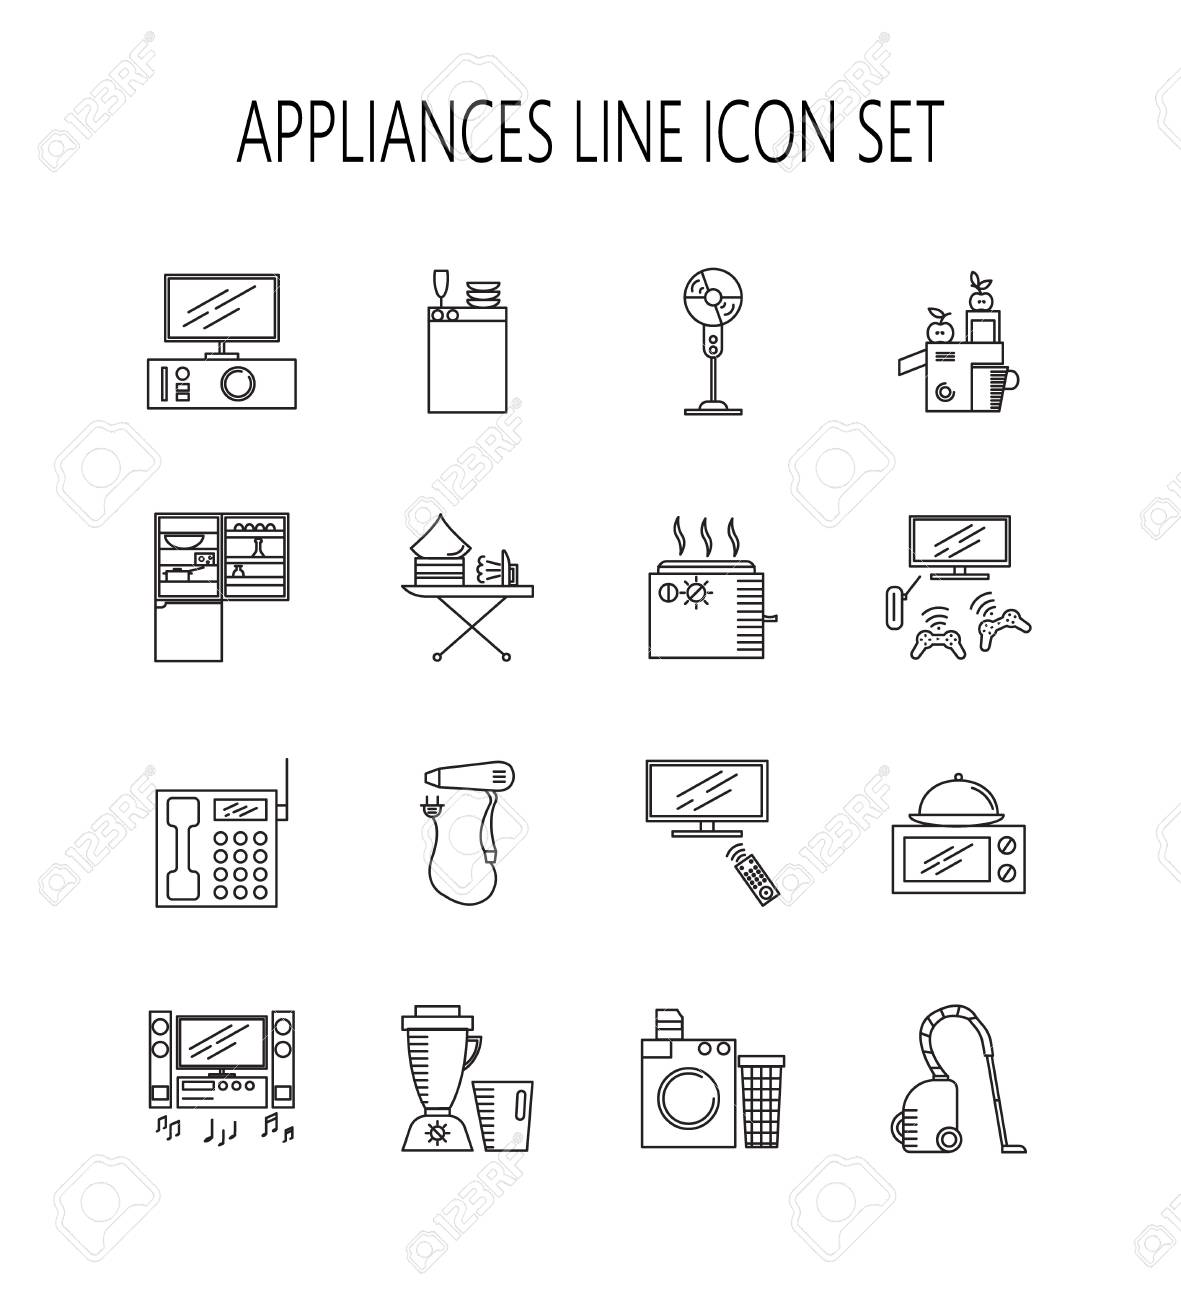 Appliances Line Icon Set. Collection Of Vector Symbols On The ...